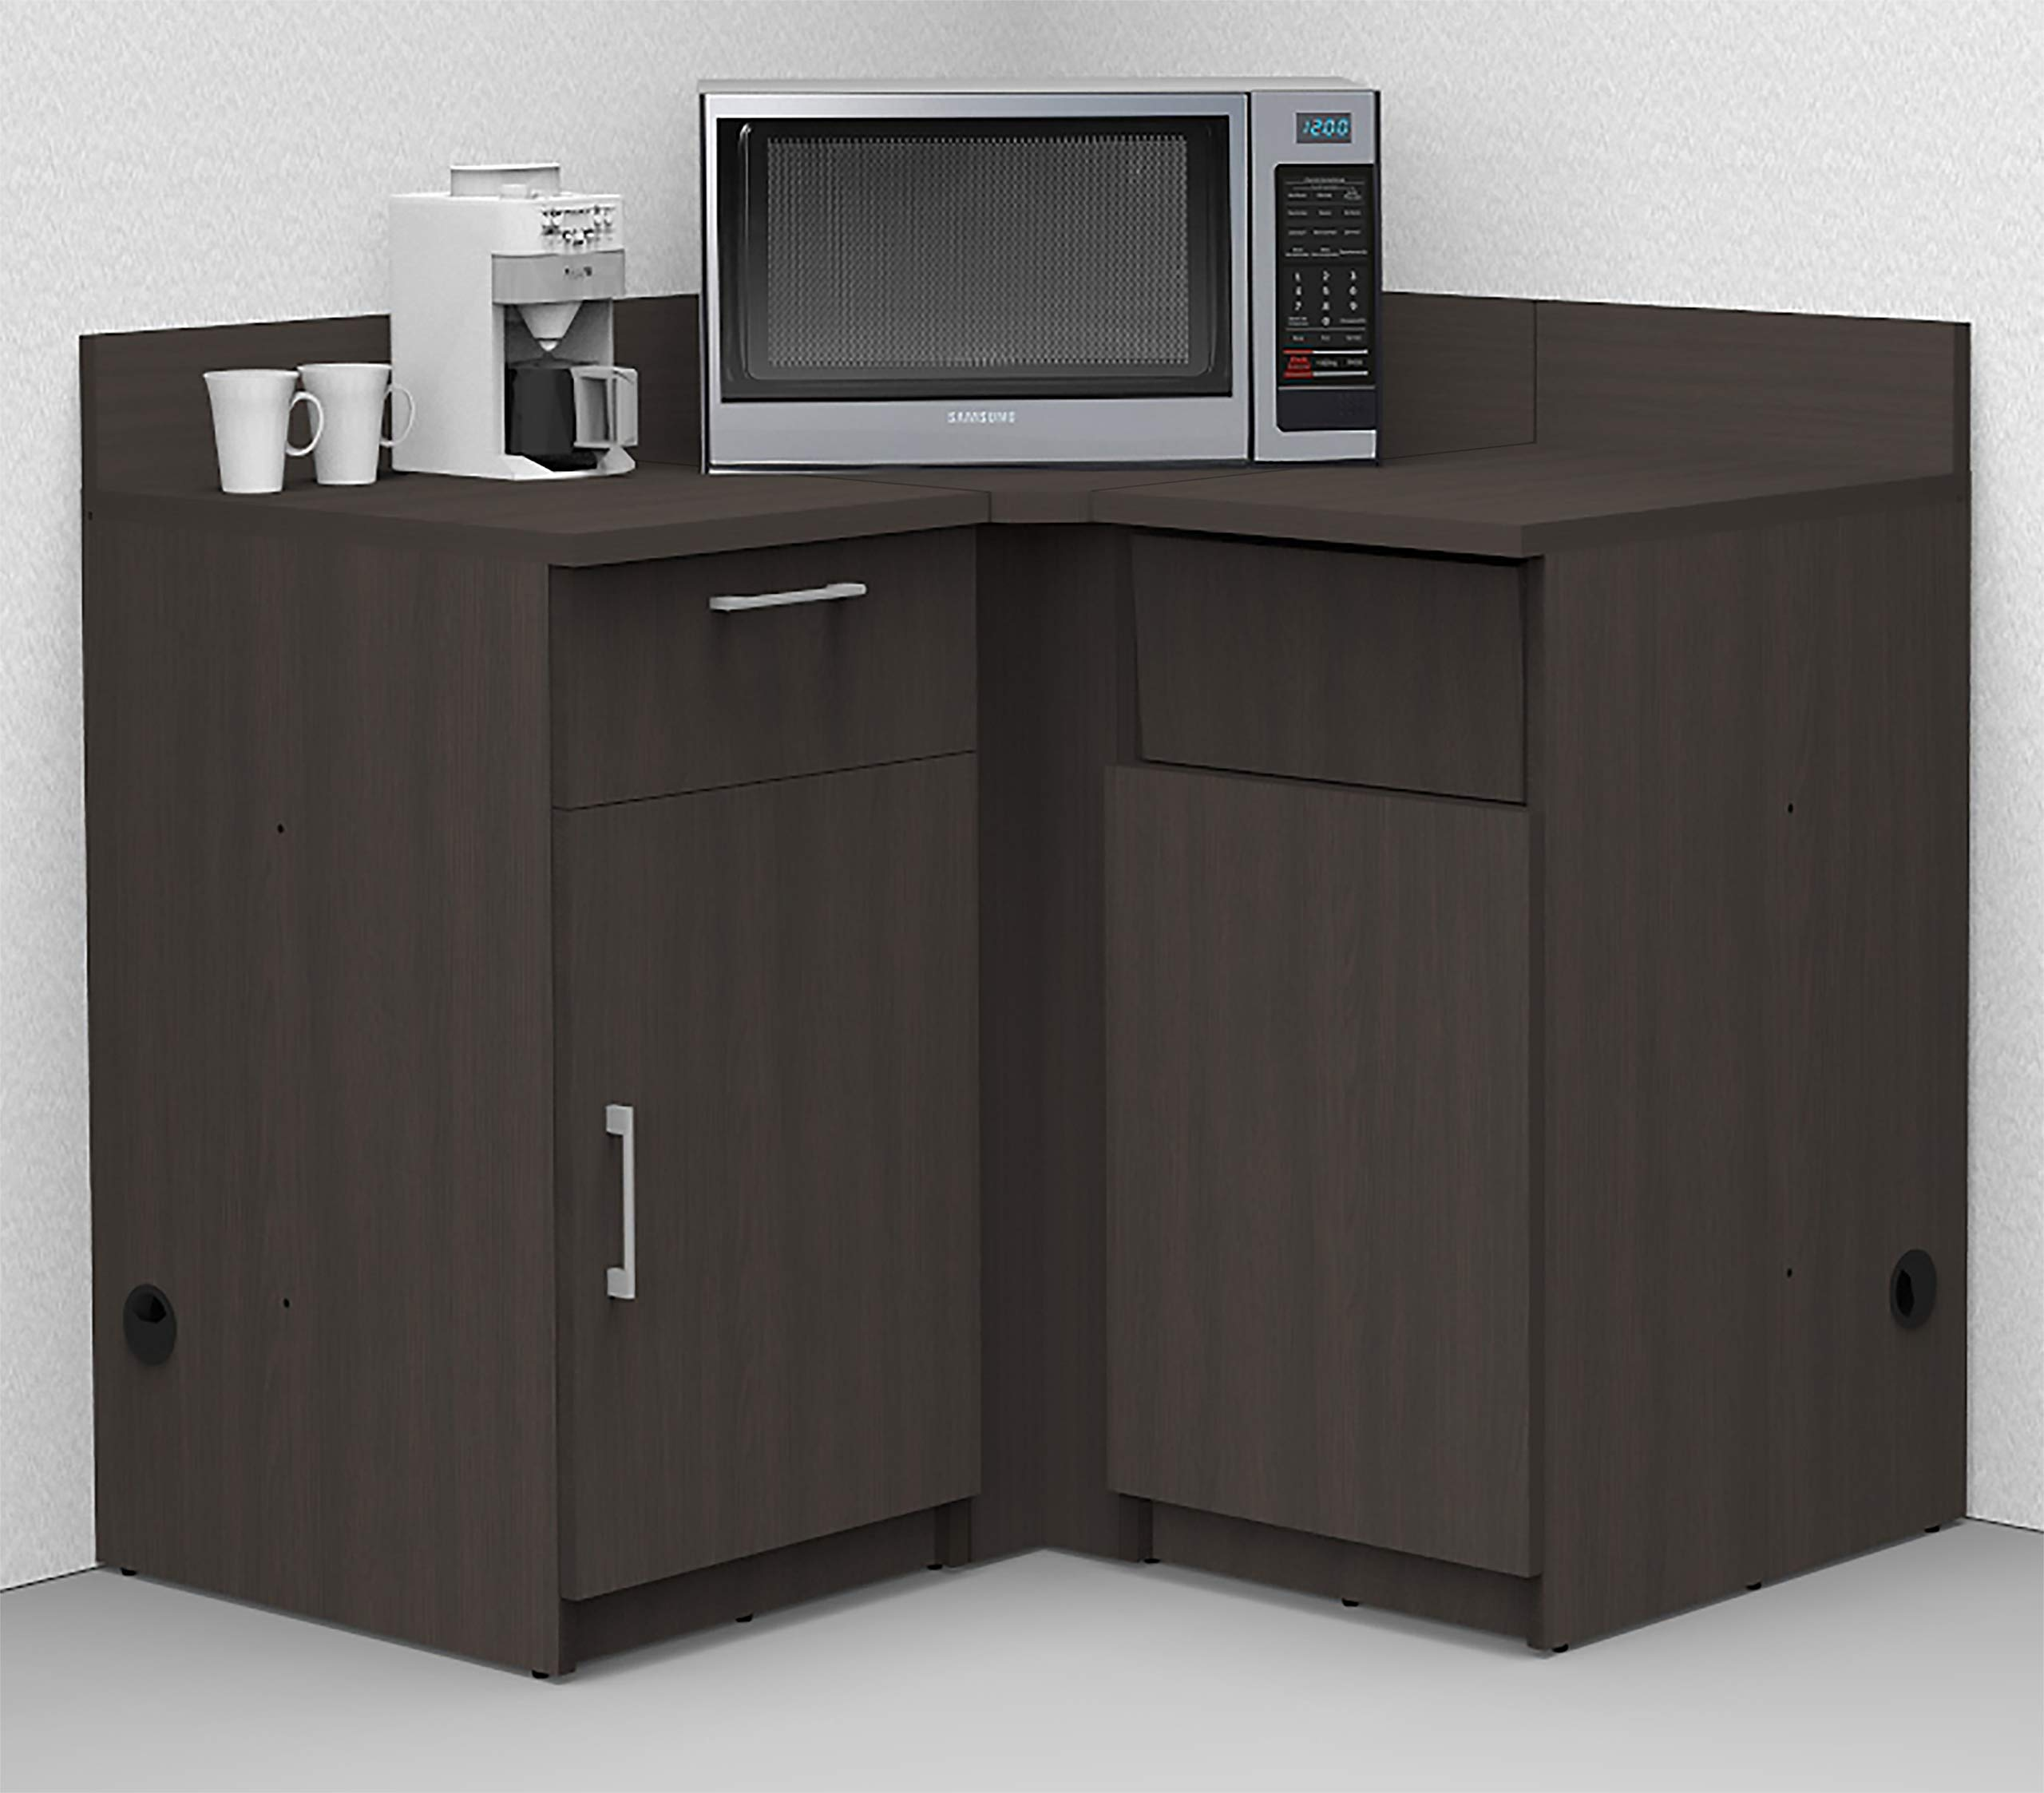 Coffee Kitchen Lunch Break Room Corner Space Saver Model 5975 BREAKTIME 3 Piece Color Espresso - Fully Factory Assembled. Purchase is Furniture Items ONLY. by Breaktime